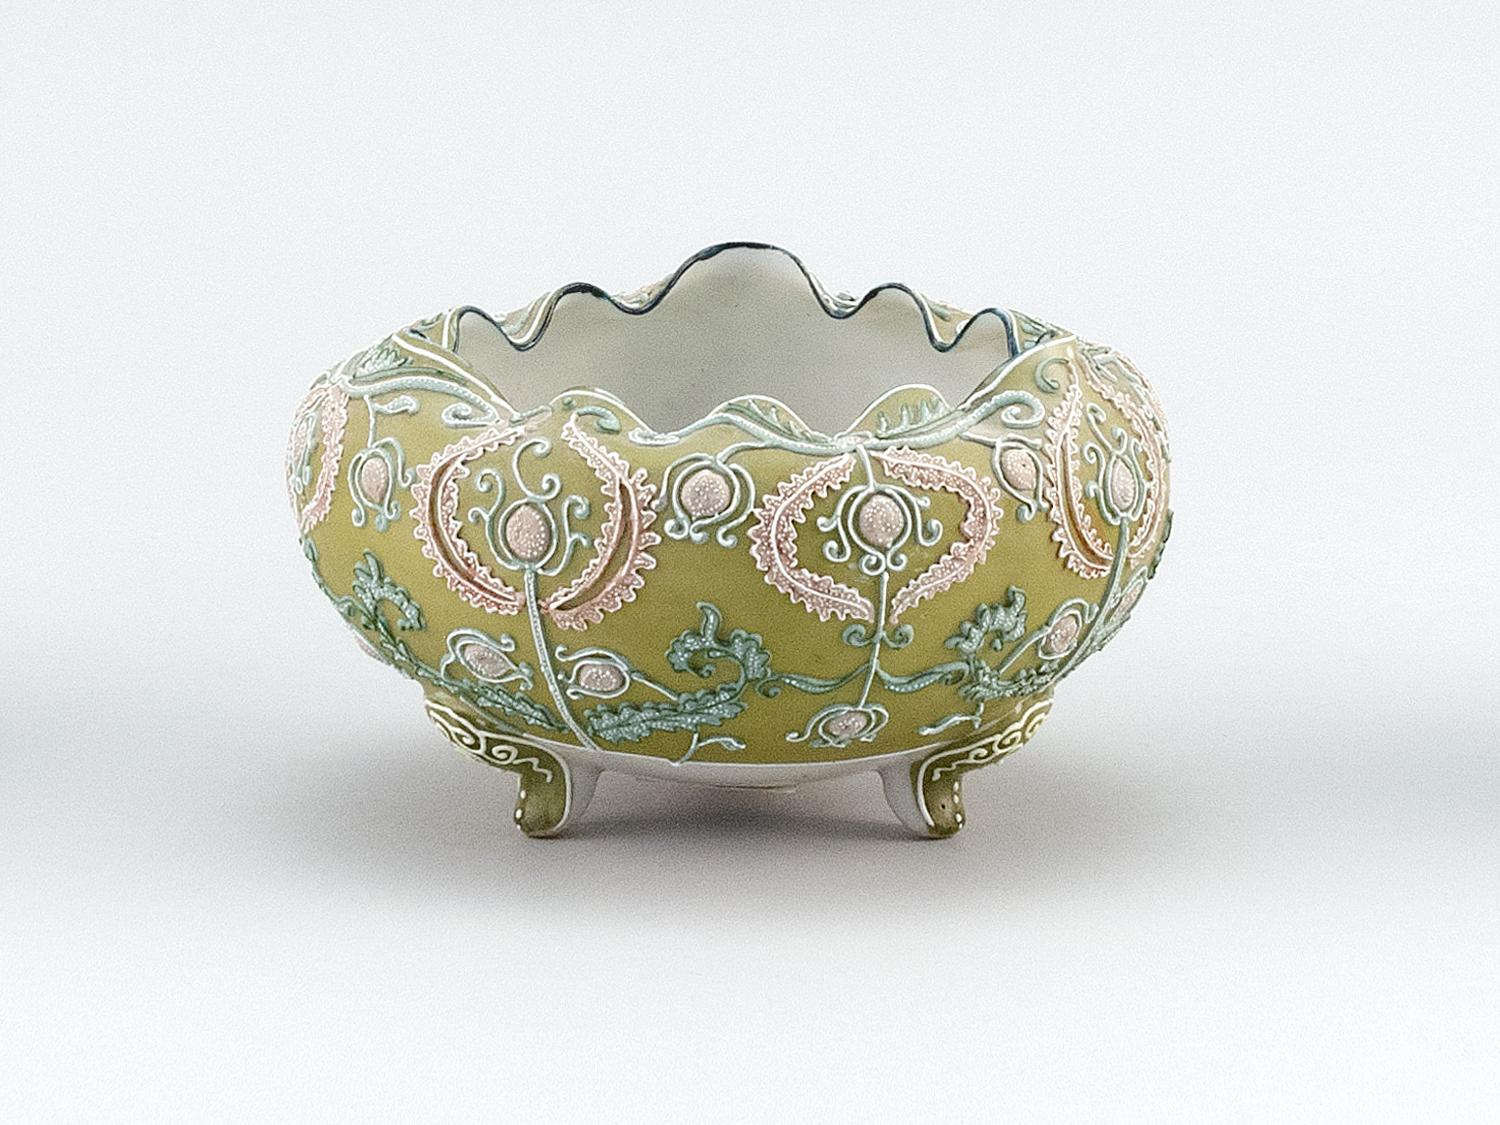 """MORIAGE NIPPON PORCELAIN FOOTED BOWL Ovoid, with tripod base and passionflower decoration. Van Patten #52 mark on base. Diameter 5.5""""."""